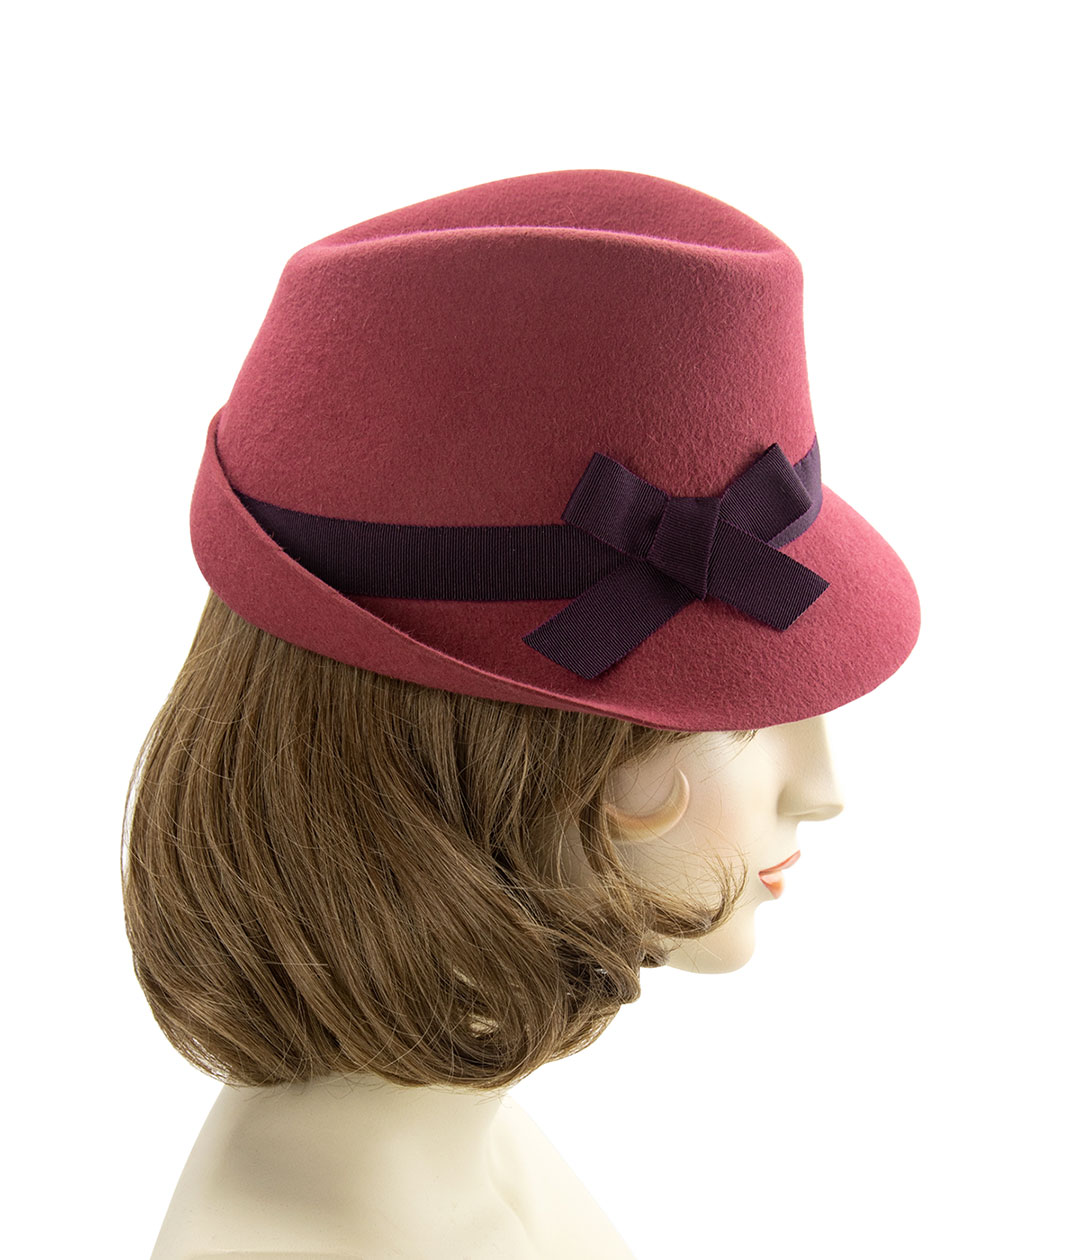 Right side view of vintage-style hat in cinnamon felt with burgundy band and bow.